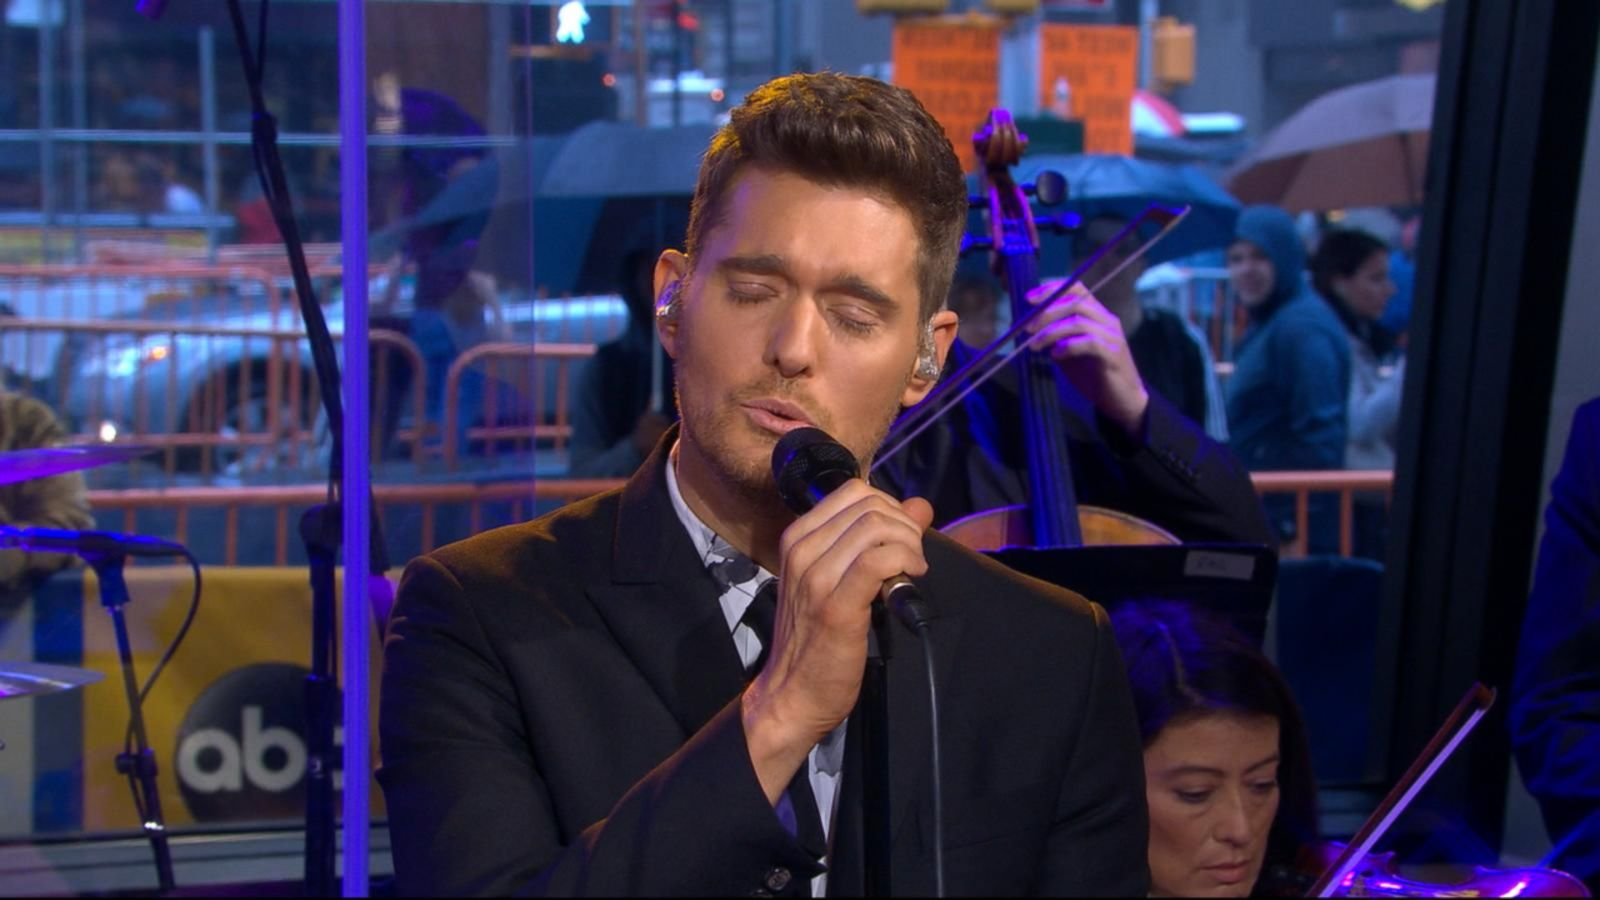 VIDEO: Michael Buble Sings 'God Only Knows'